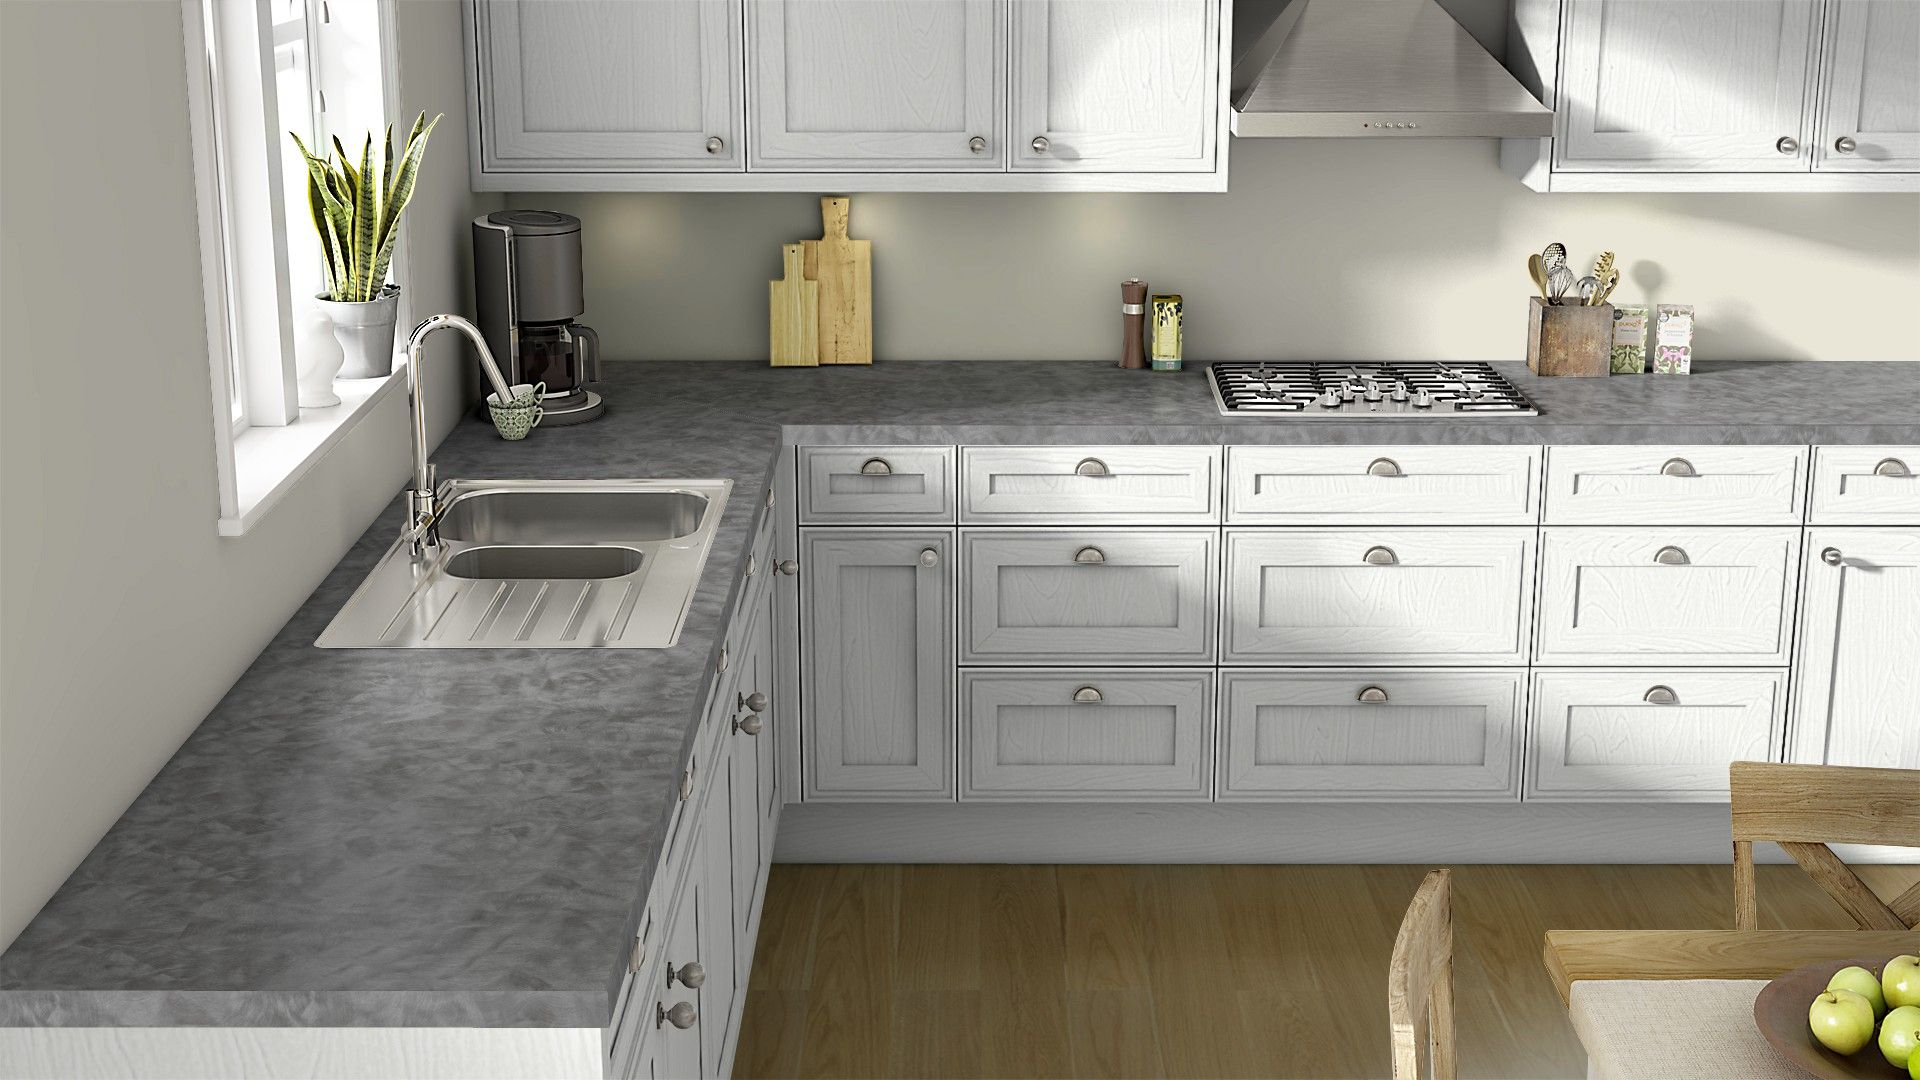 archives luxury new kitchen base pewter york category st design img countertops wood countertop charles of for